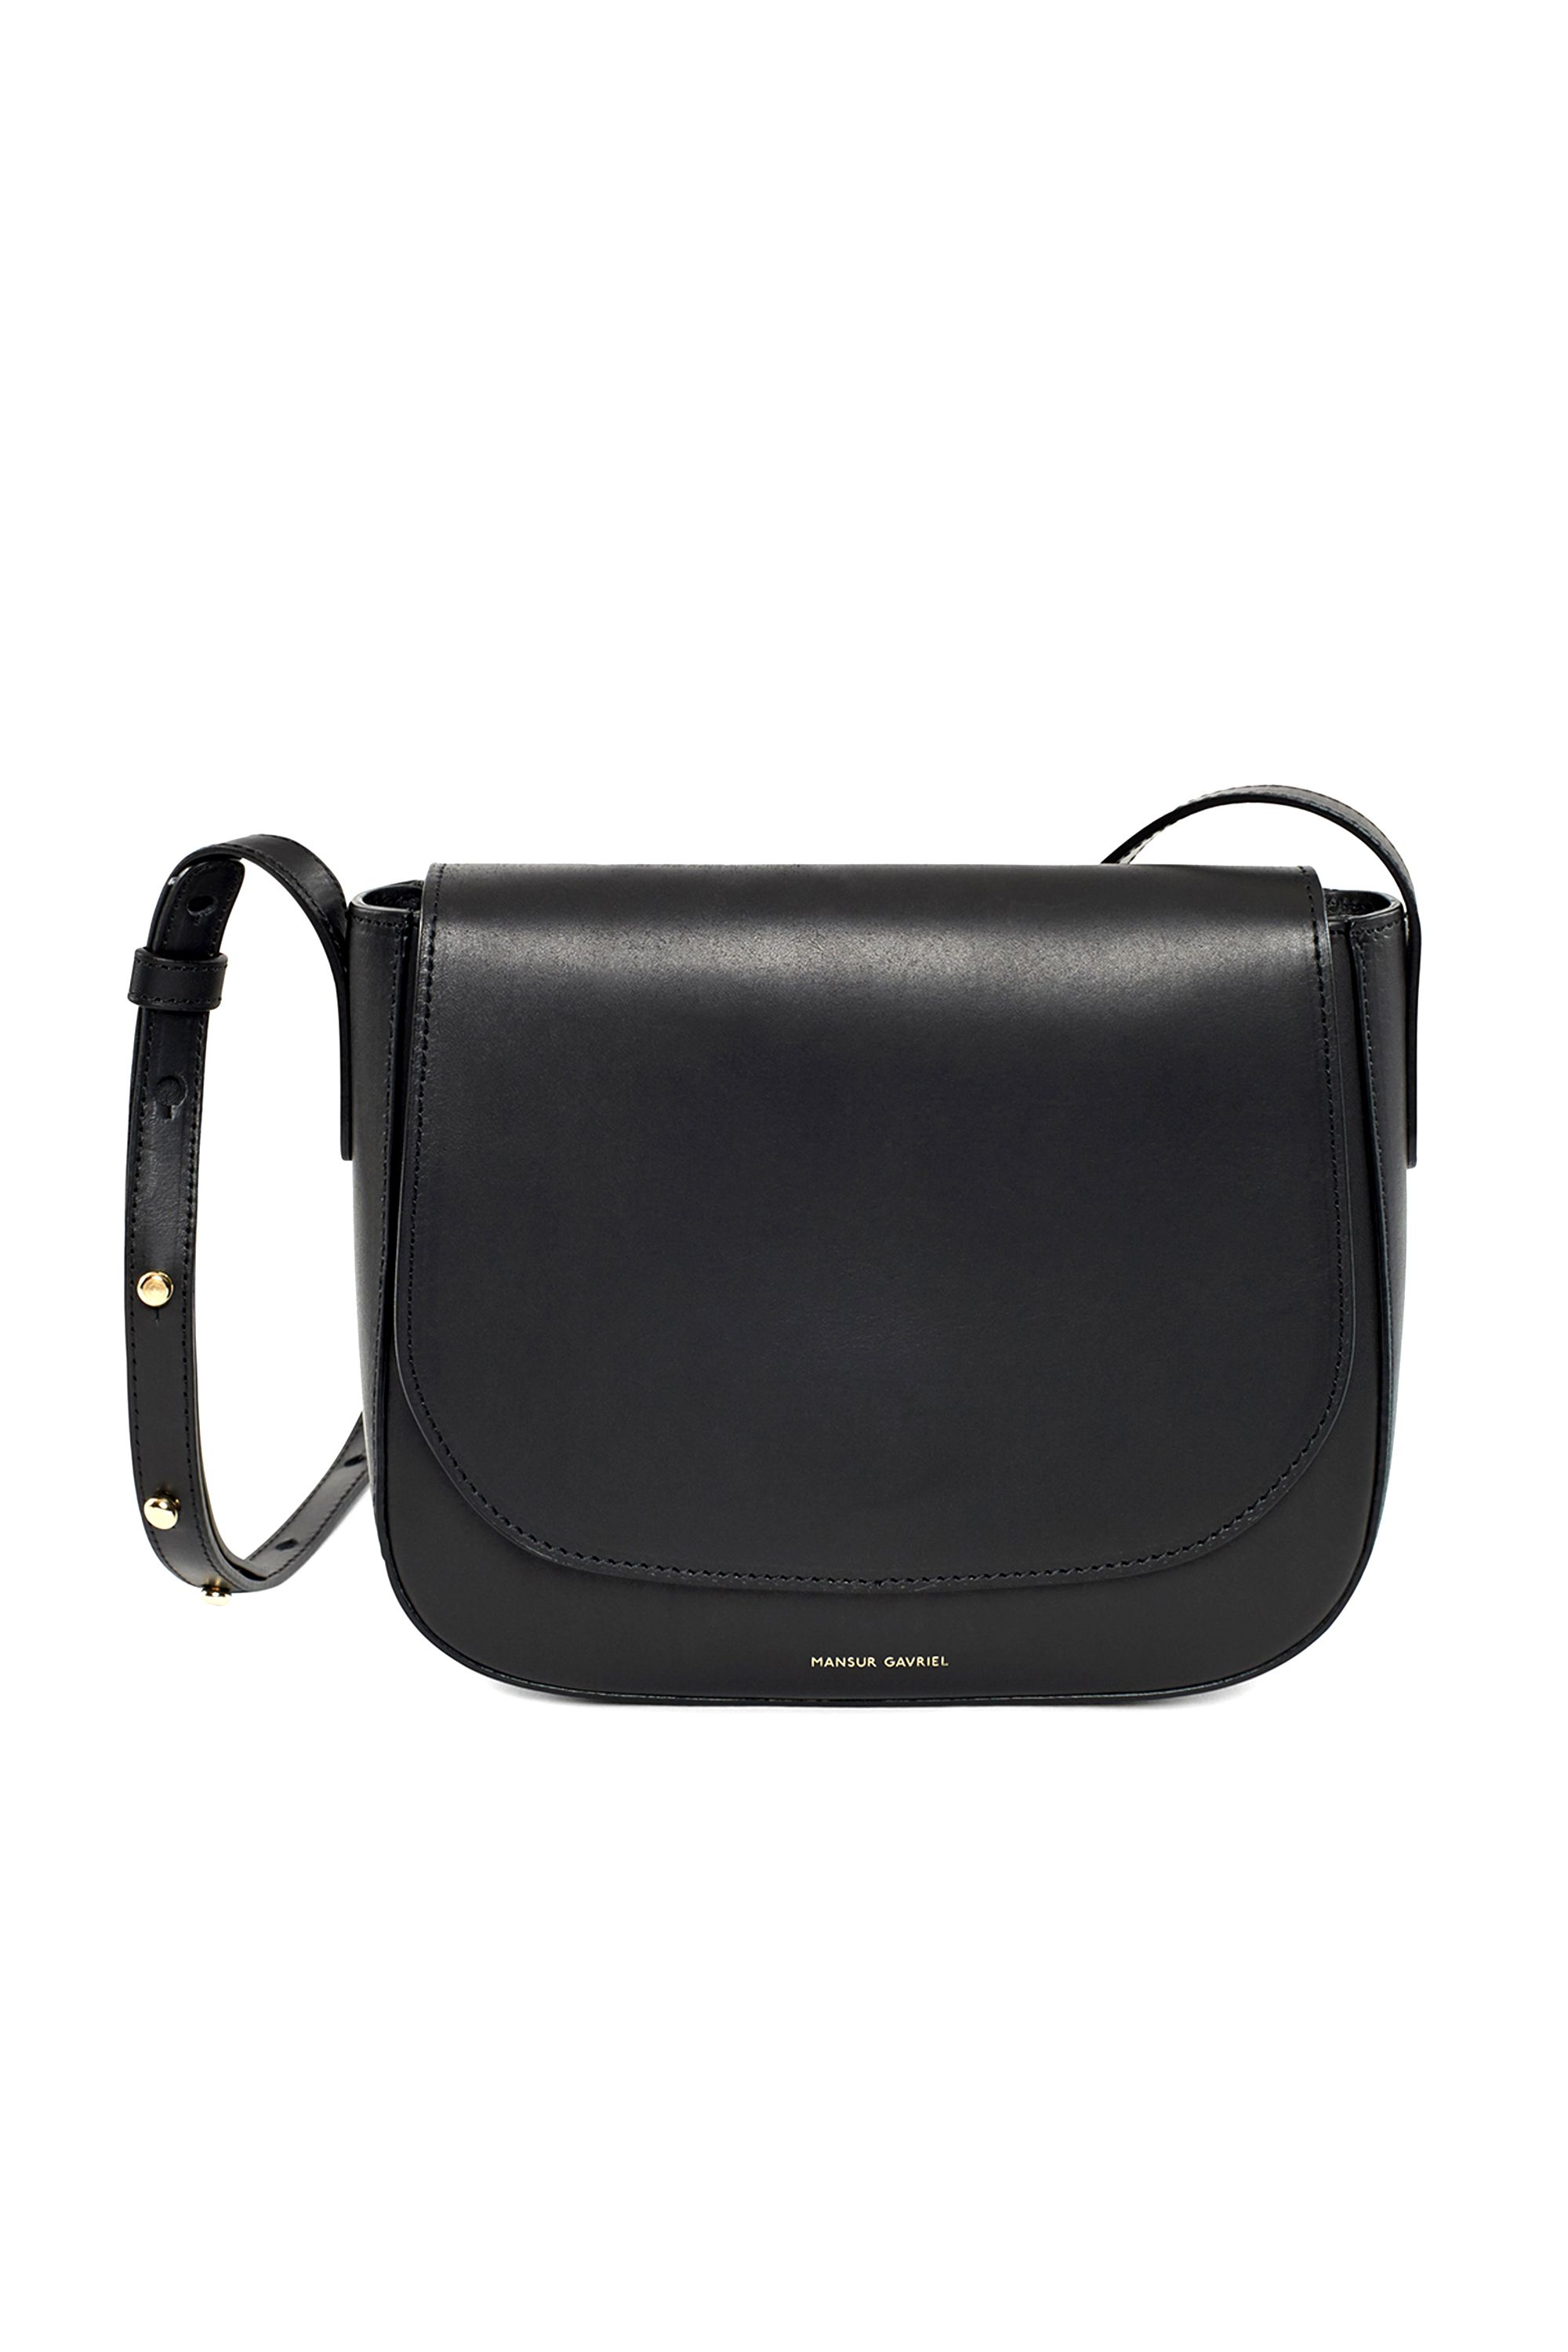 4f50ddd8eb One of 20 Black Crossbody Bags That Work With Everything - MANSUR GAVRIEL  ( )